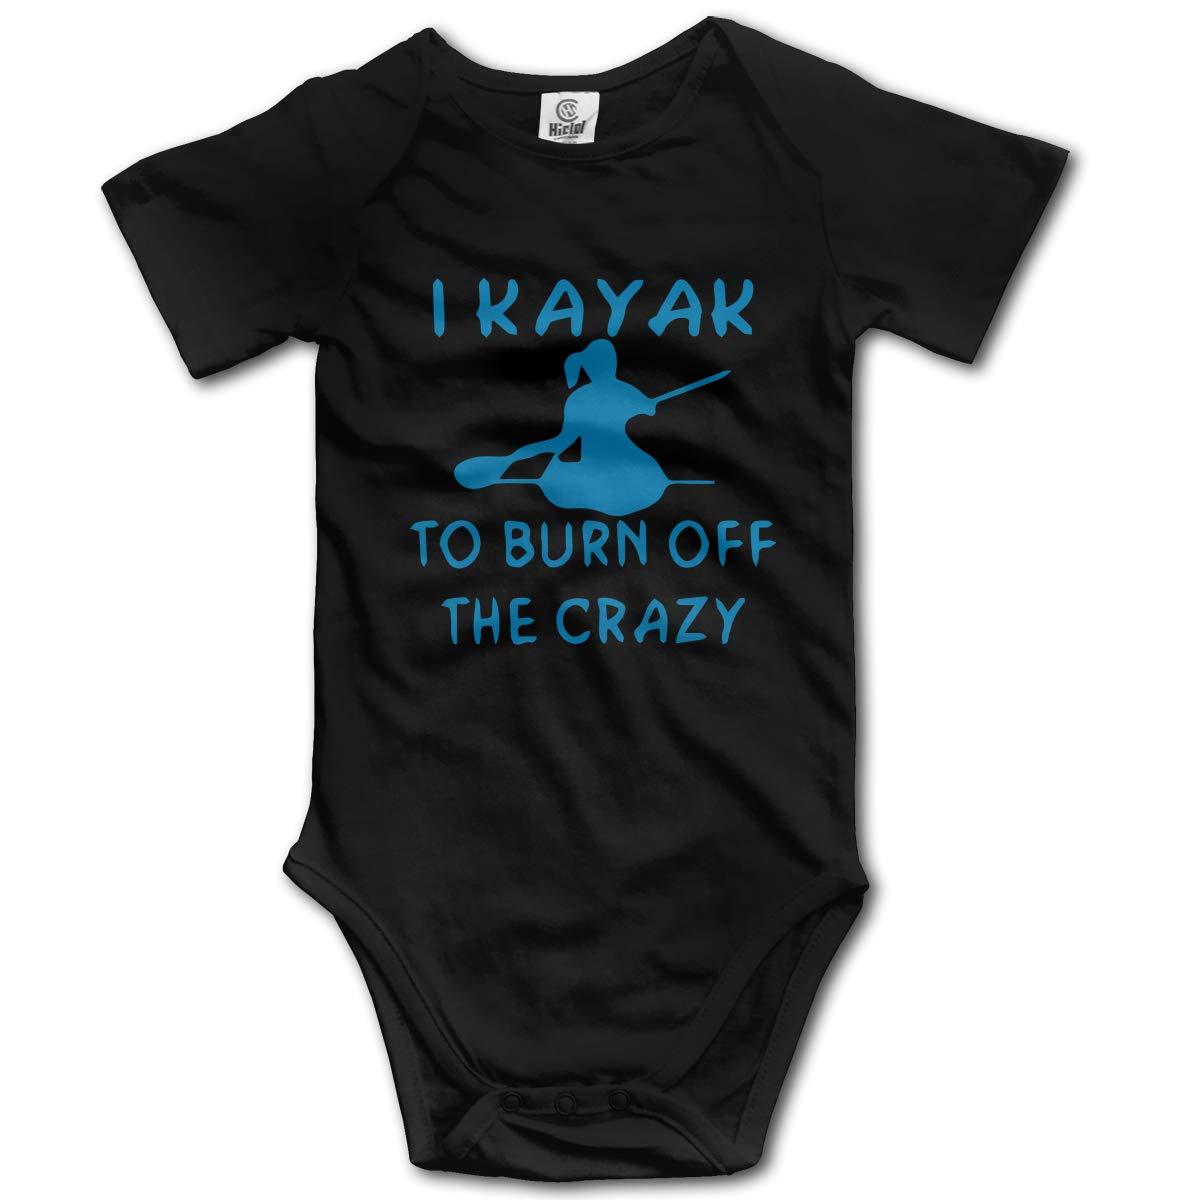 Cute I Kayak to Burn Off The Crazy Playsuit Short Sleeve Cotton Bodysuit for Unisex Baby